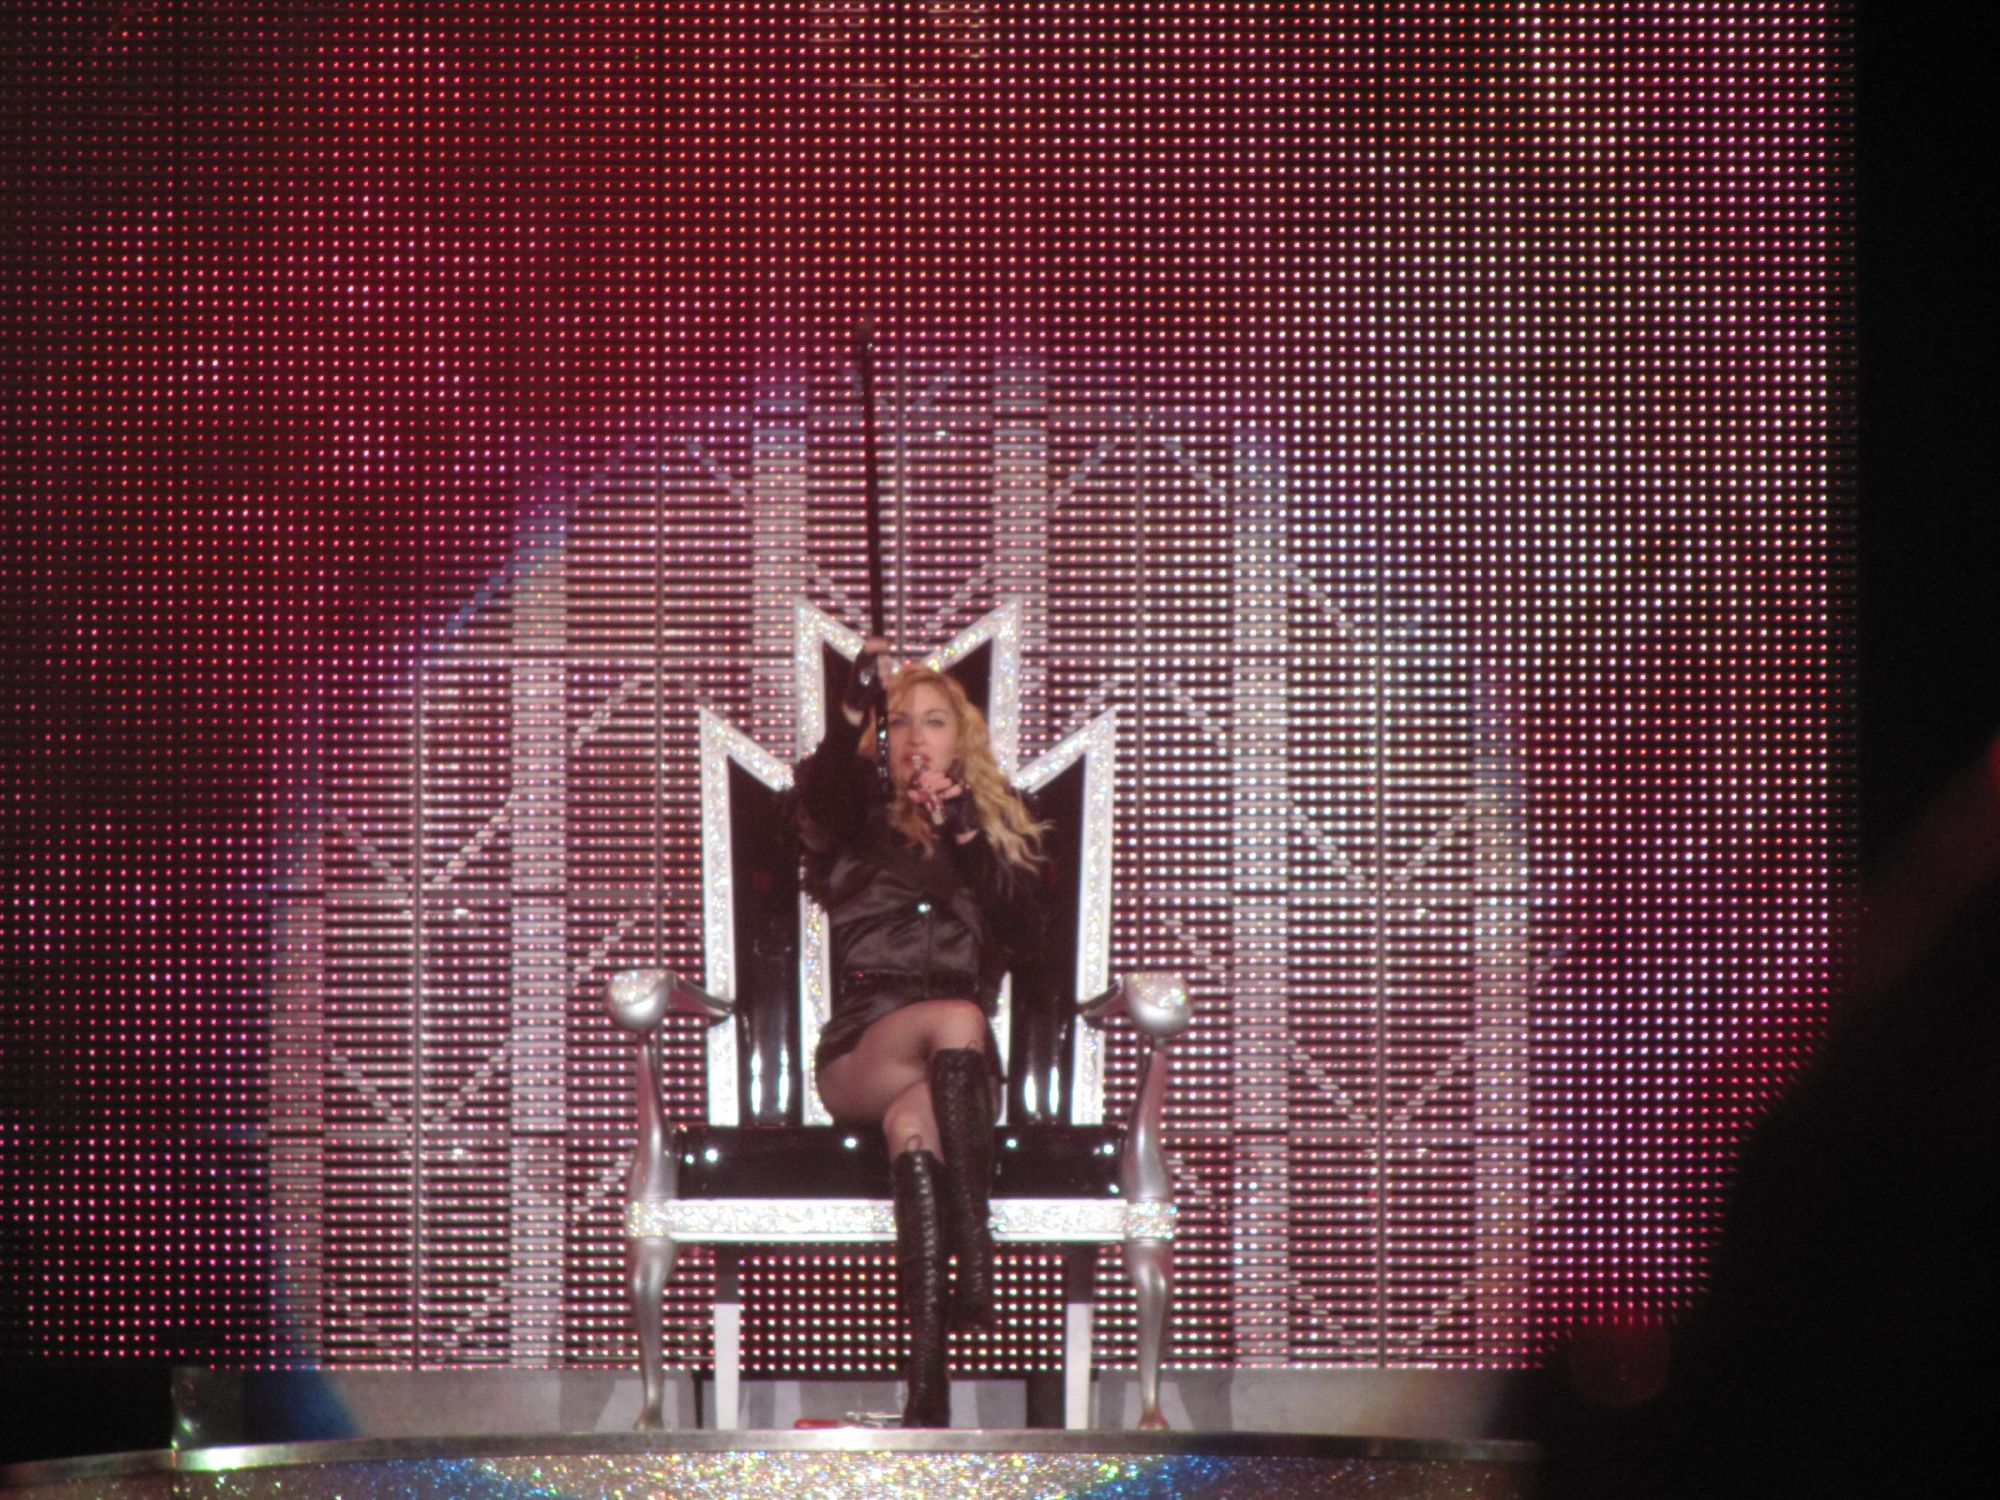 madonna-sticky-and-sweet-tour-zaragoza-antonio-0001